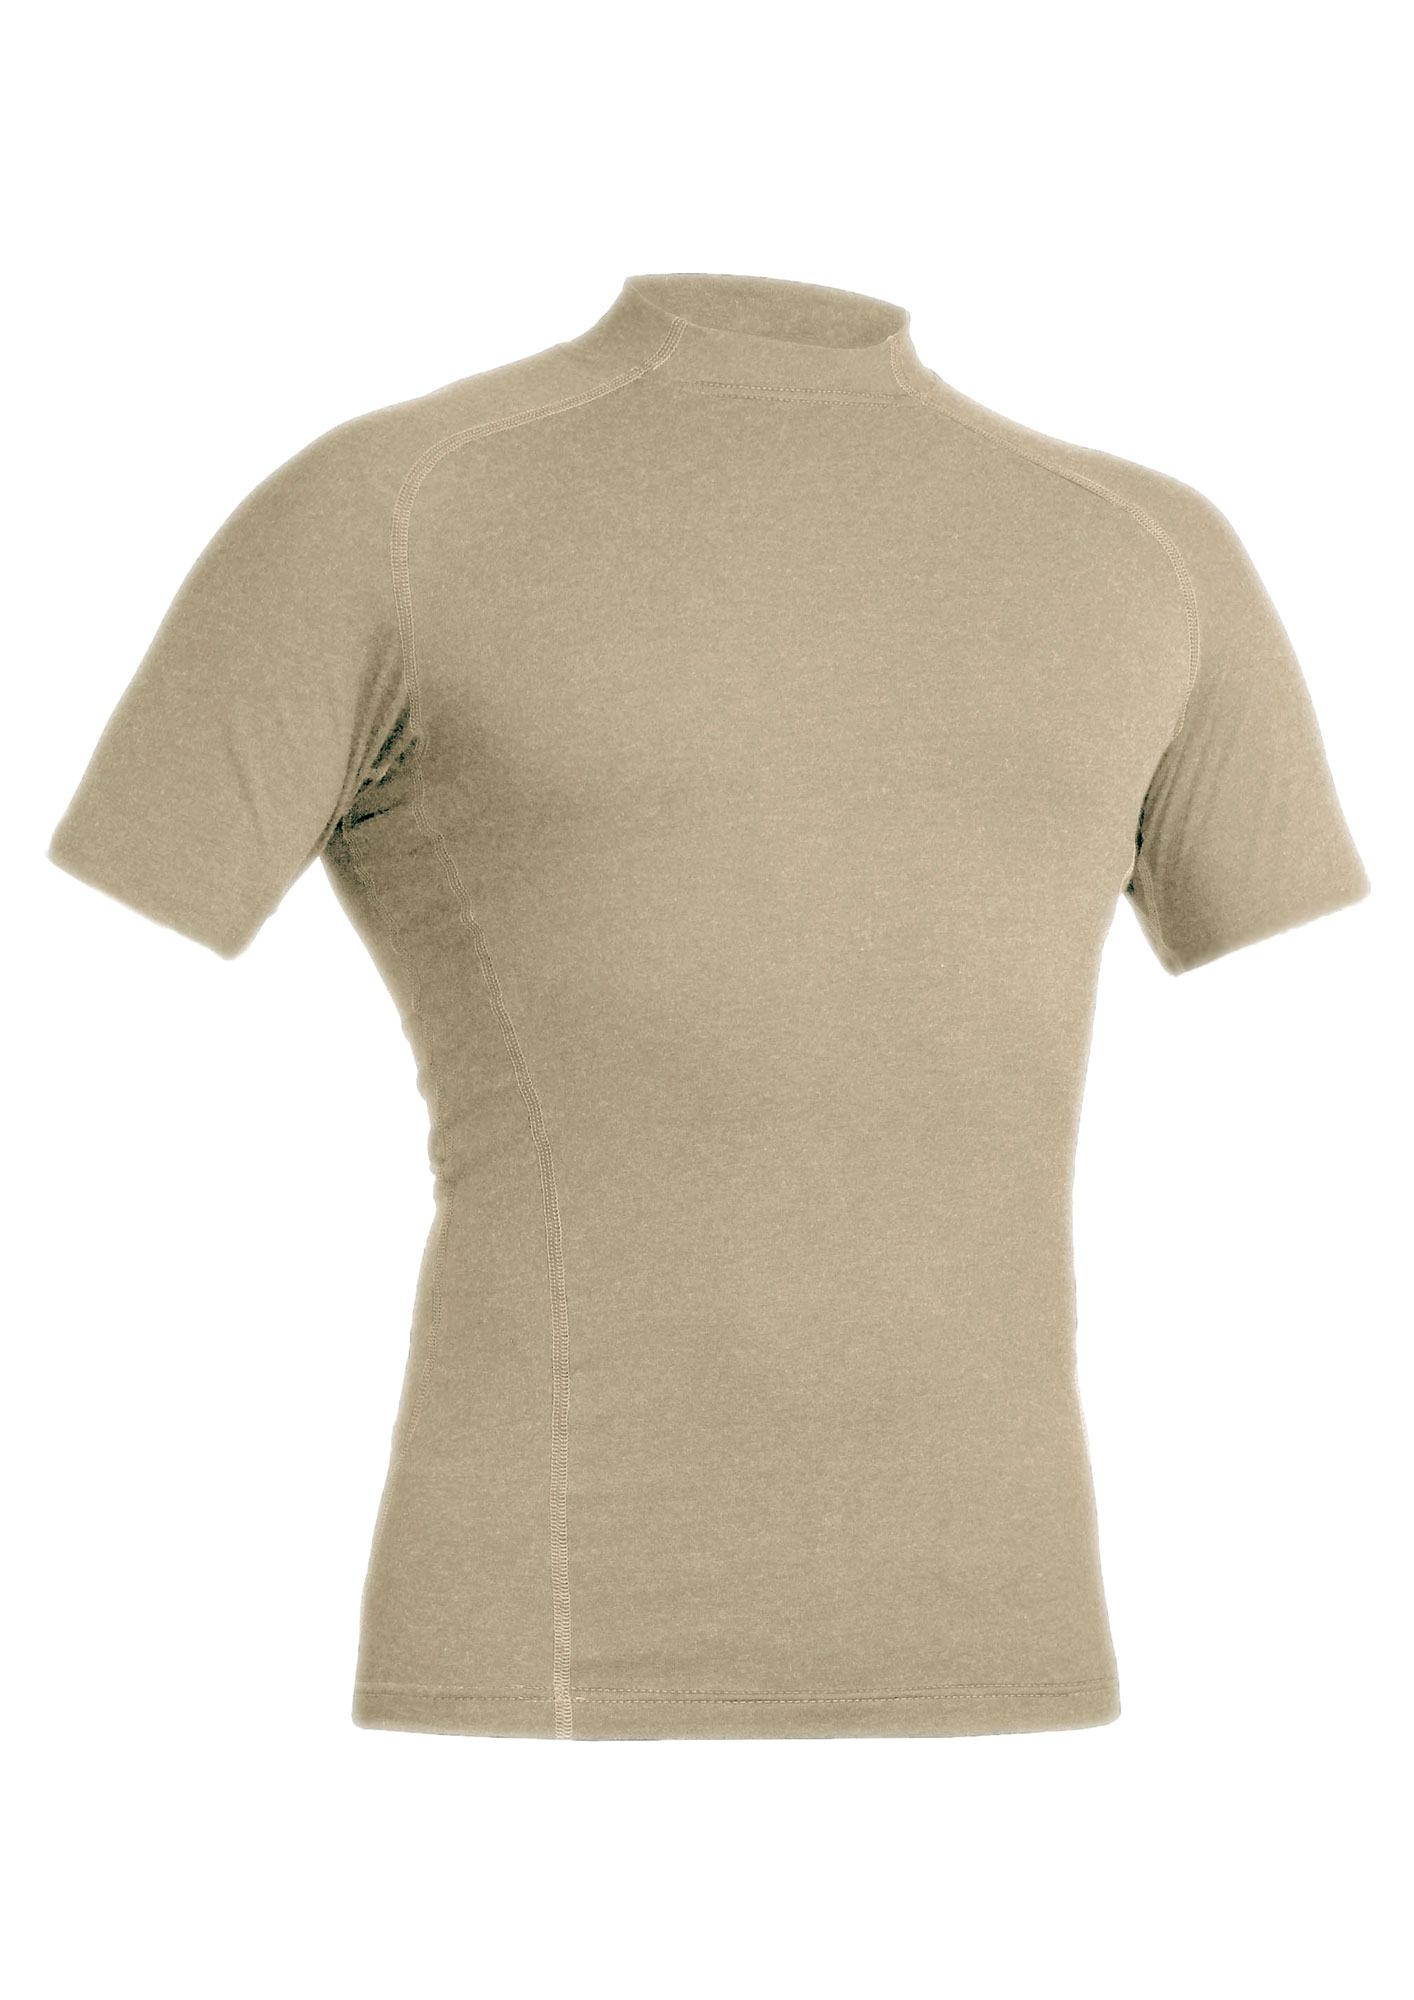 Field heavy duty T-shirt